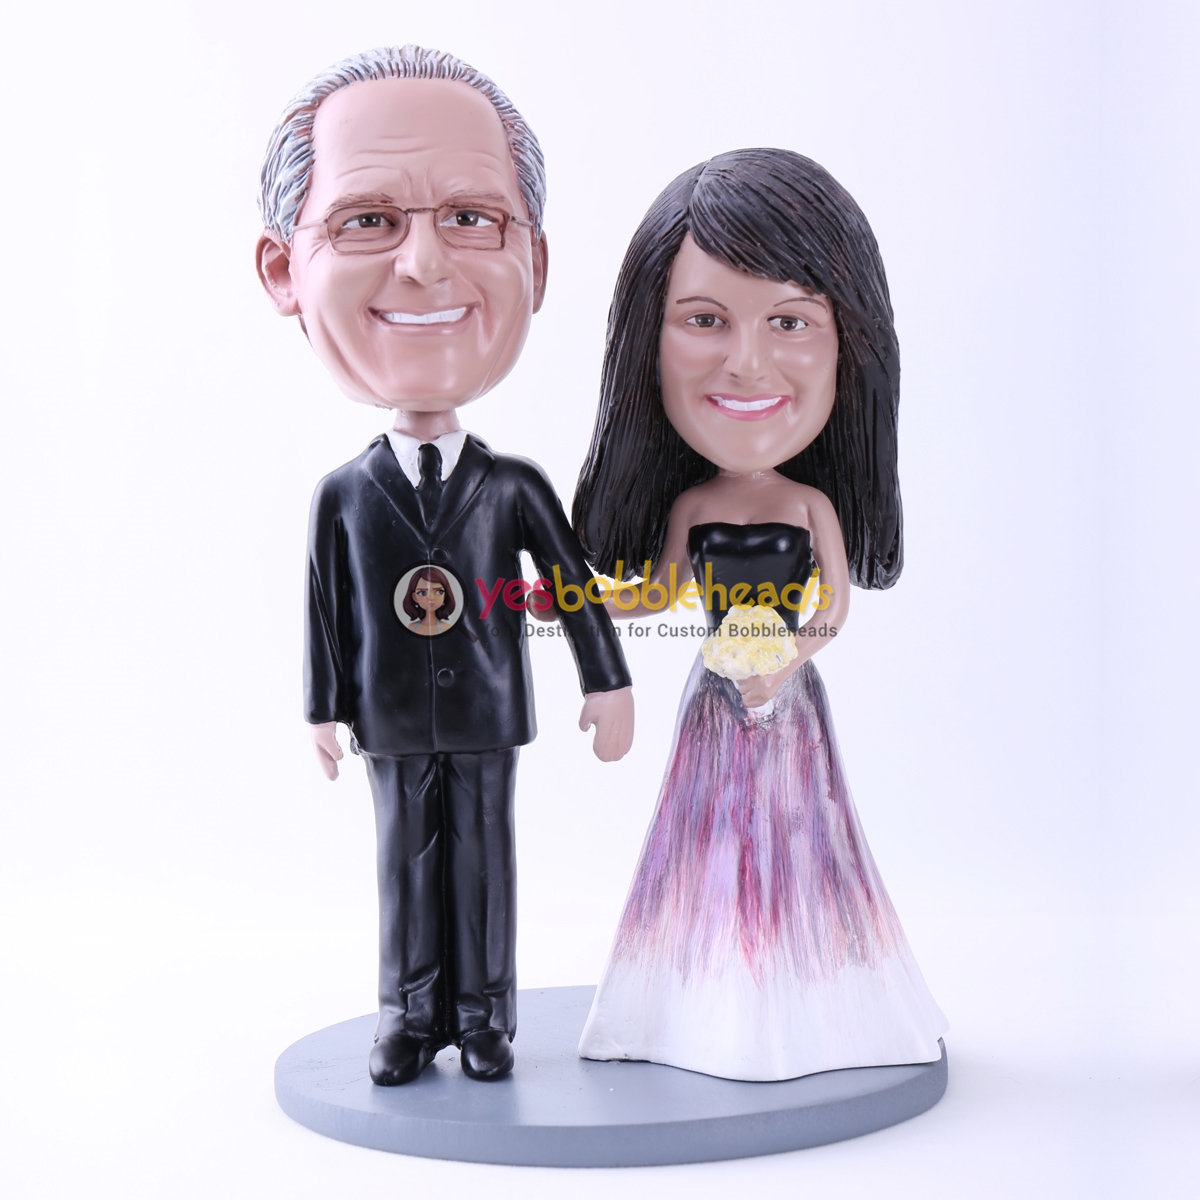 Picture of Custom Bobblehead Doll: Graceful Bride and Groom